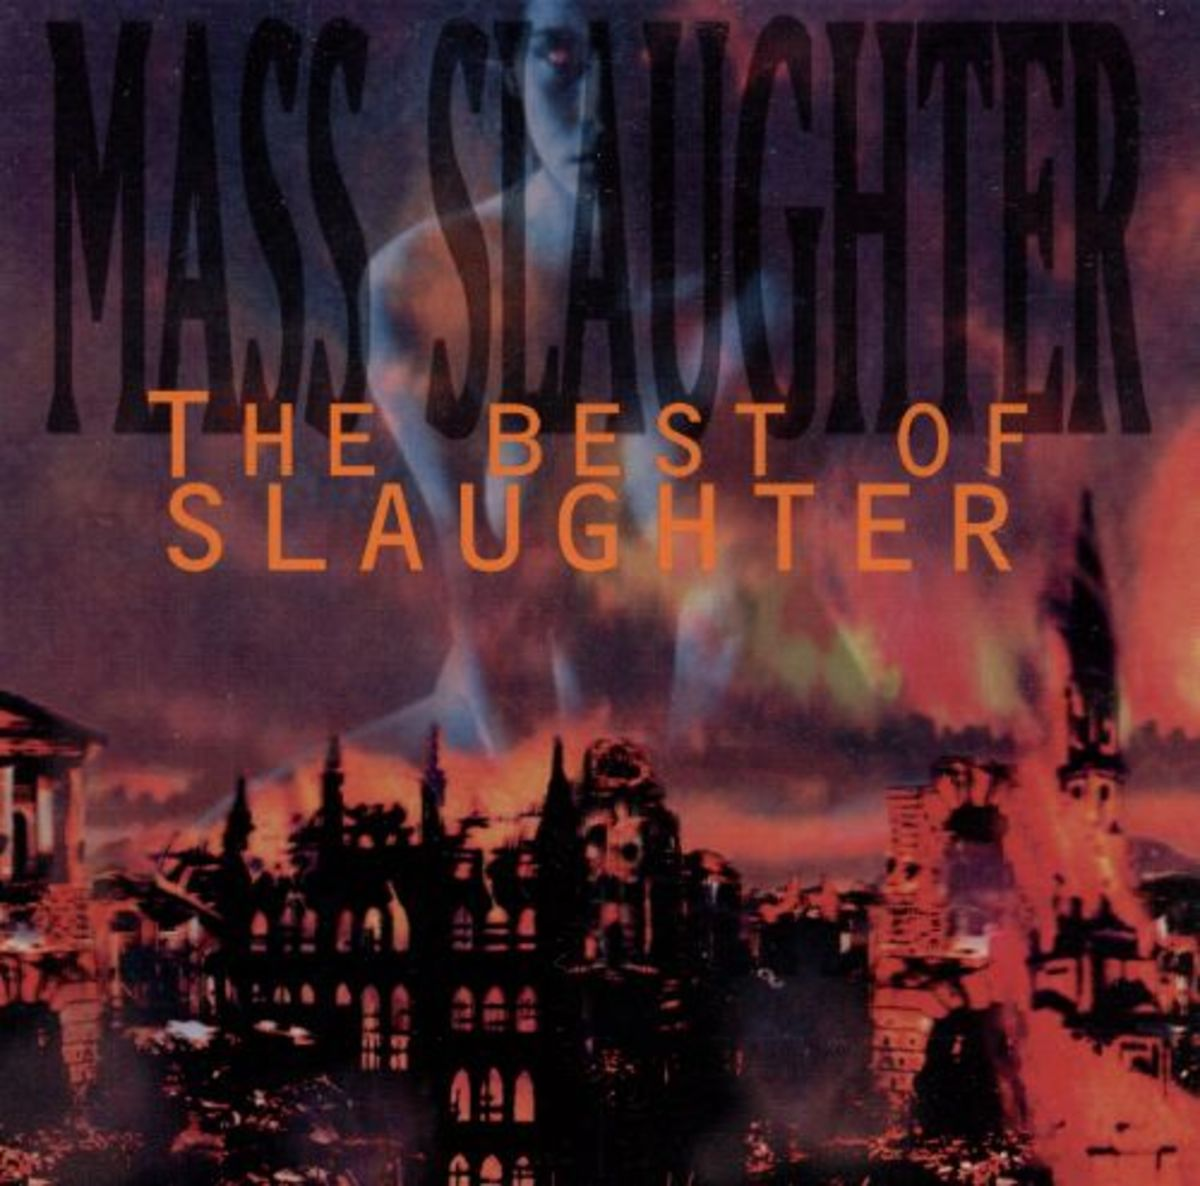 mass-slaughter-the-best-of-slaughter-cd-review